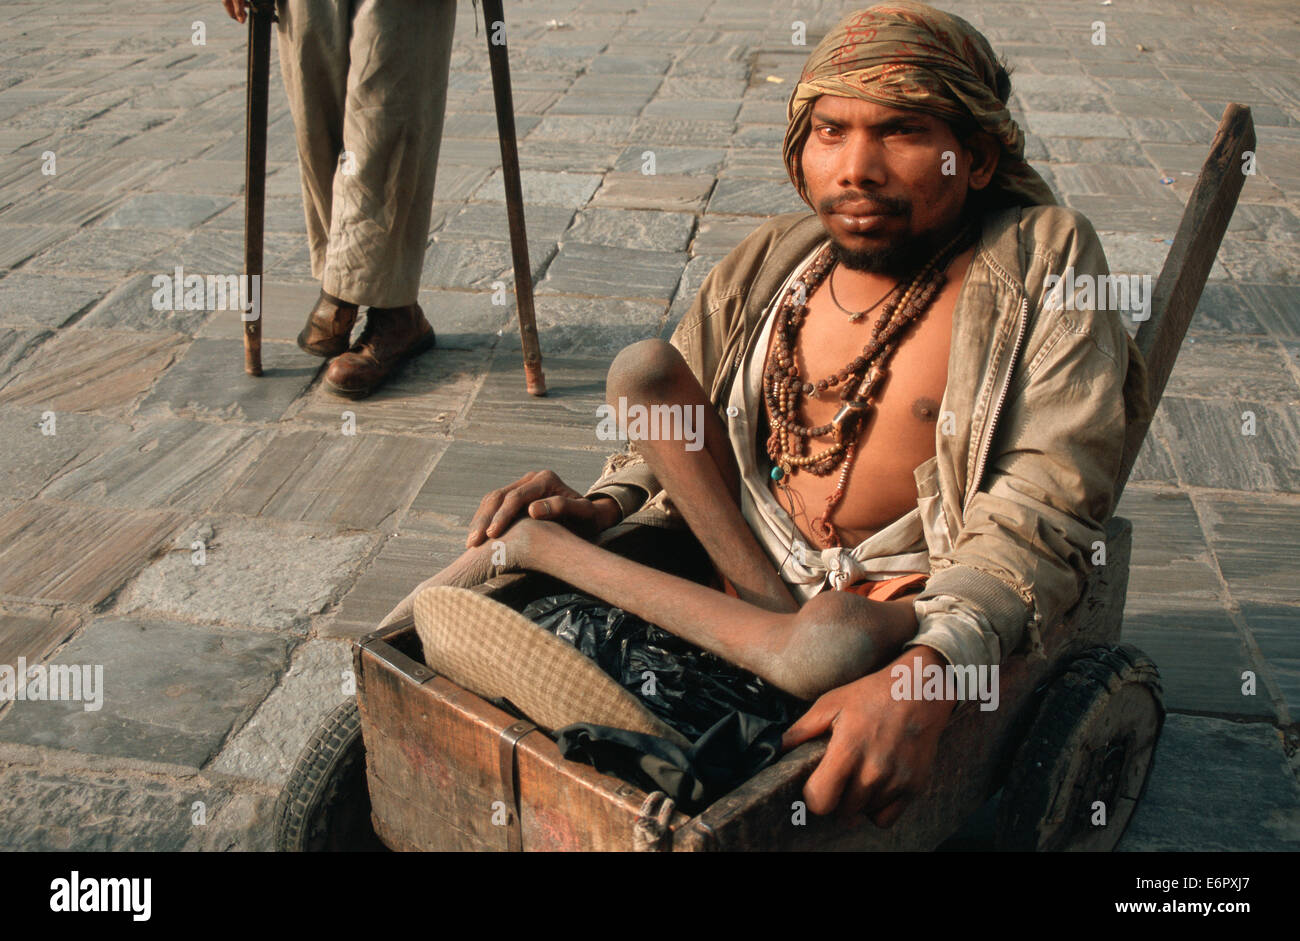 Beggar suffering from poliomyelitis on a cart. In the background, another beggar with crutches ( Nepal) - Stock Image